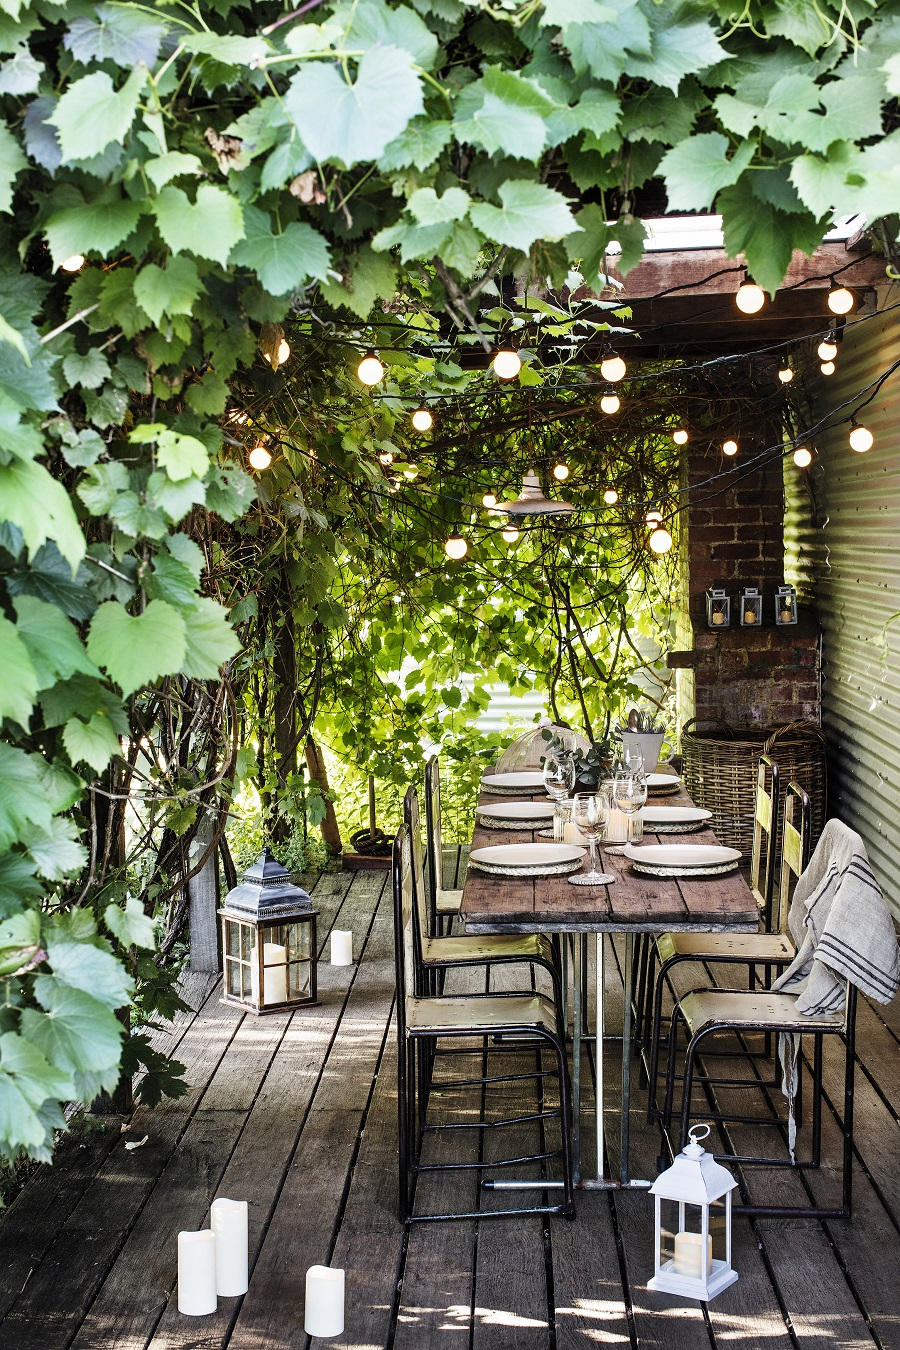 Fairy Lights are not just for Christmas - use string lights to add ambiance to a shady pergola